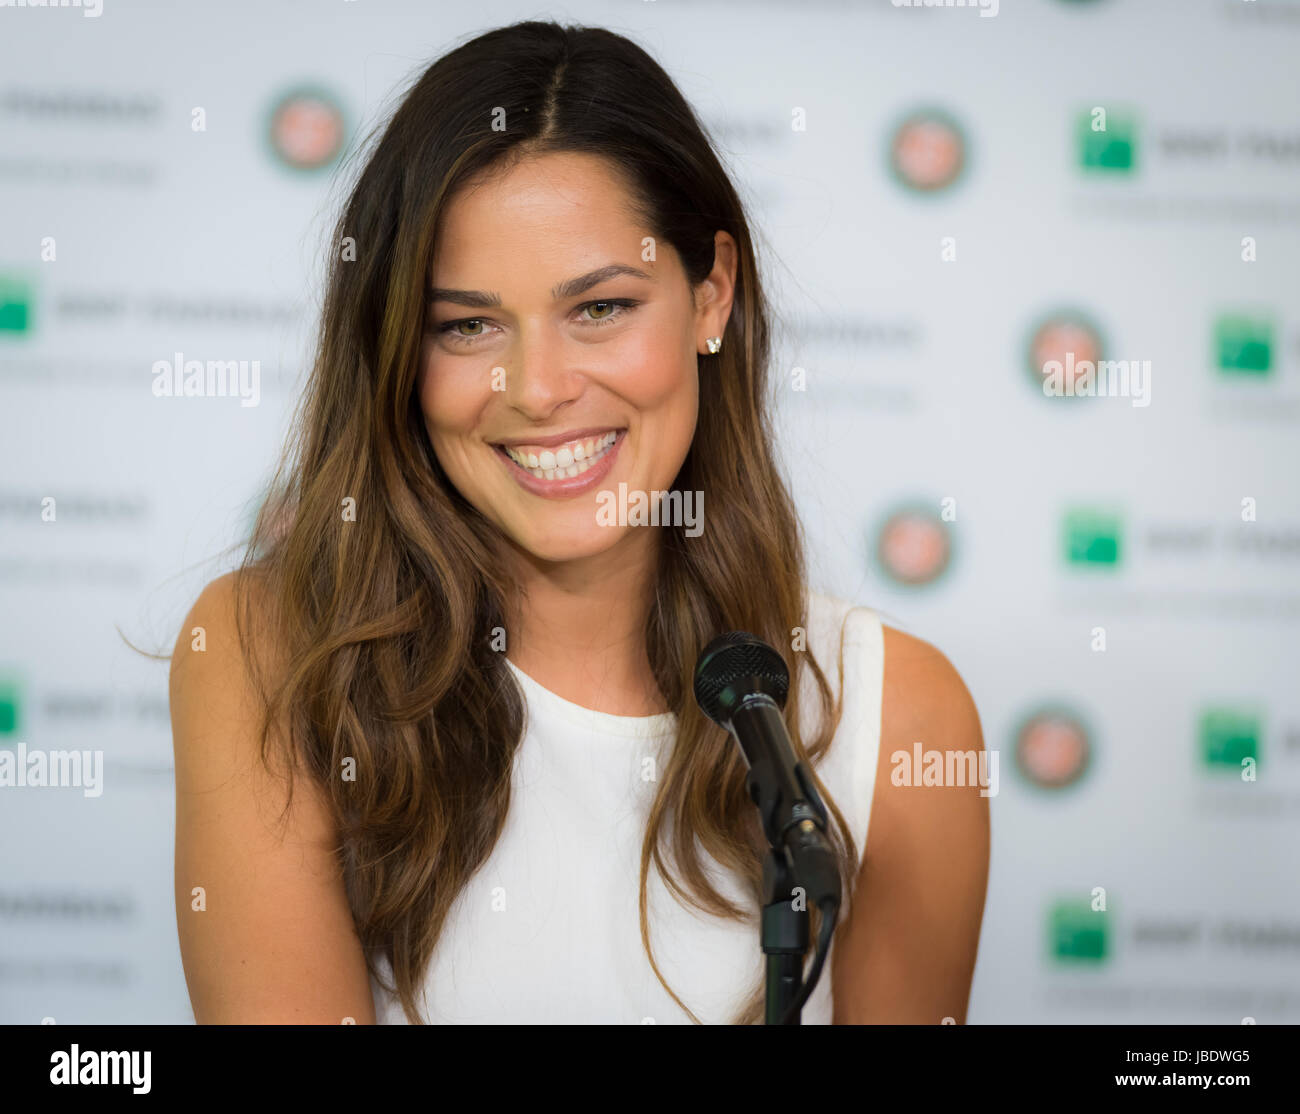 PARIS, FRANCE - JUNE 8 : Ana Ivanovic at the 2017 Roland ...